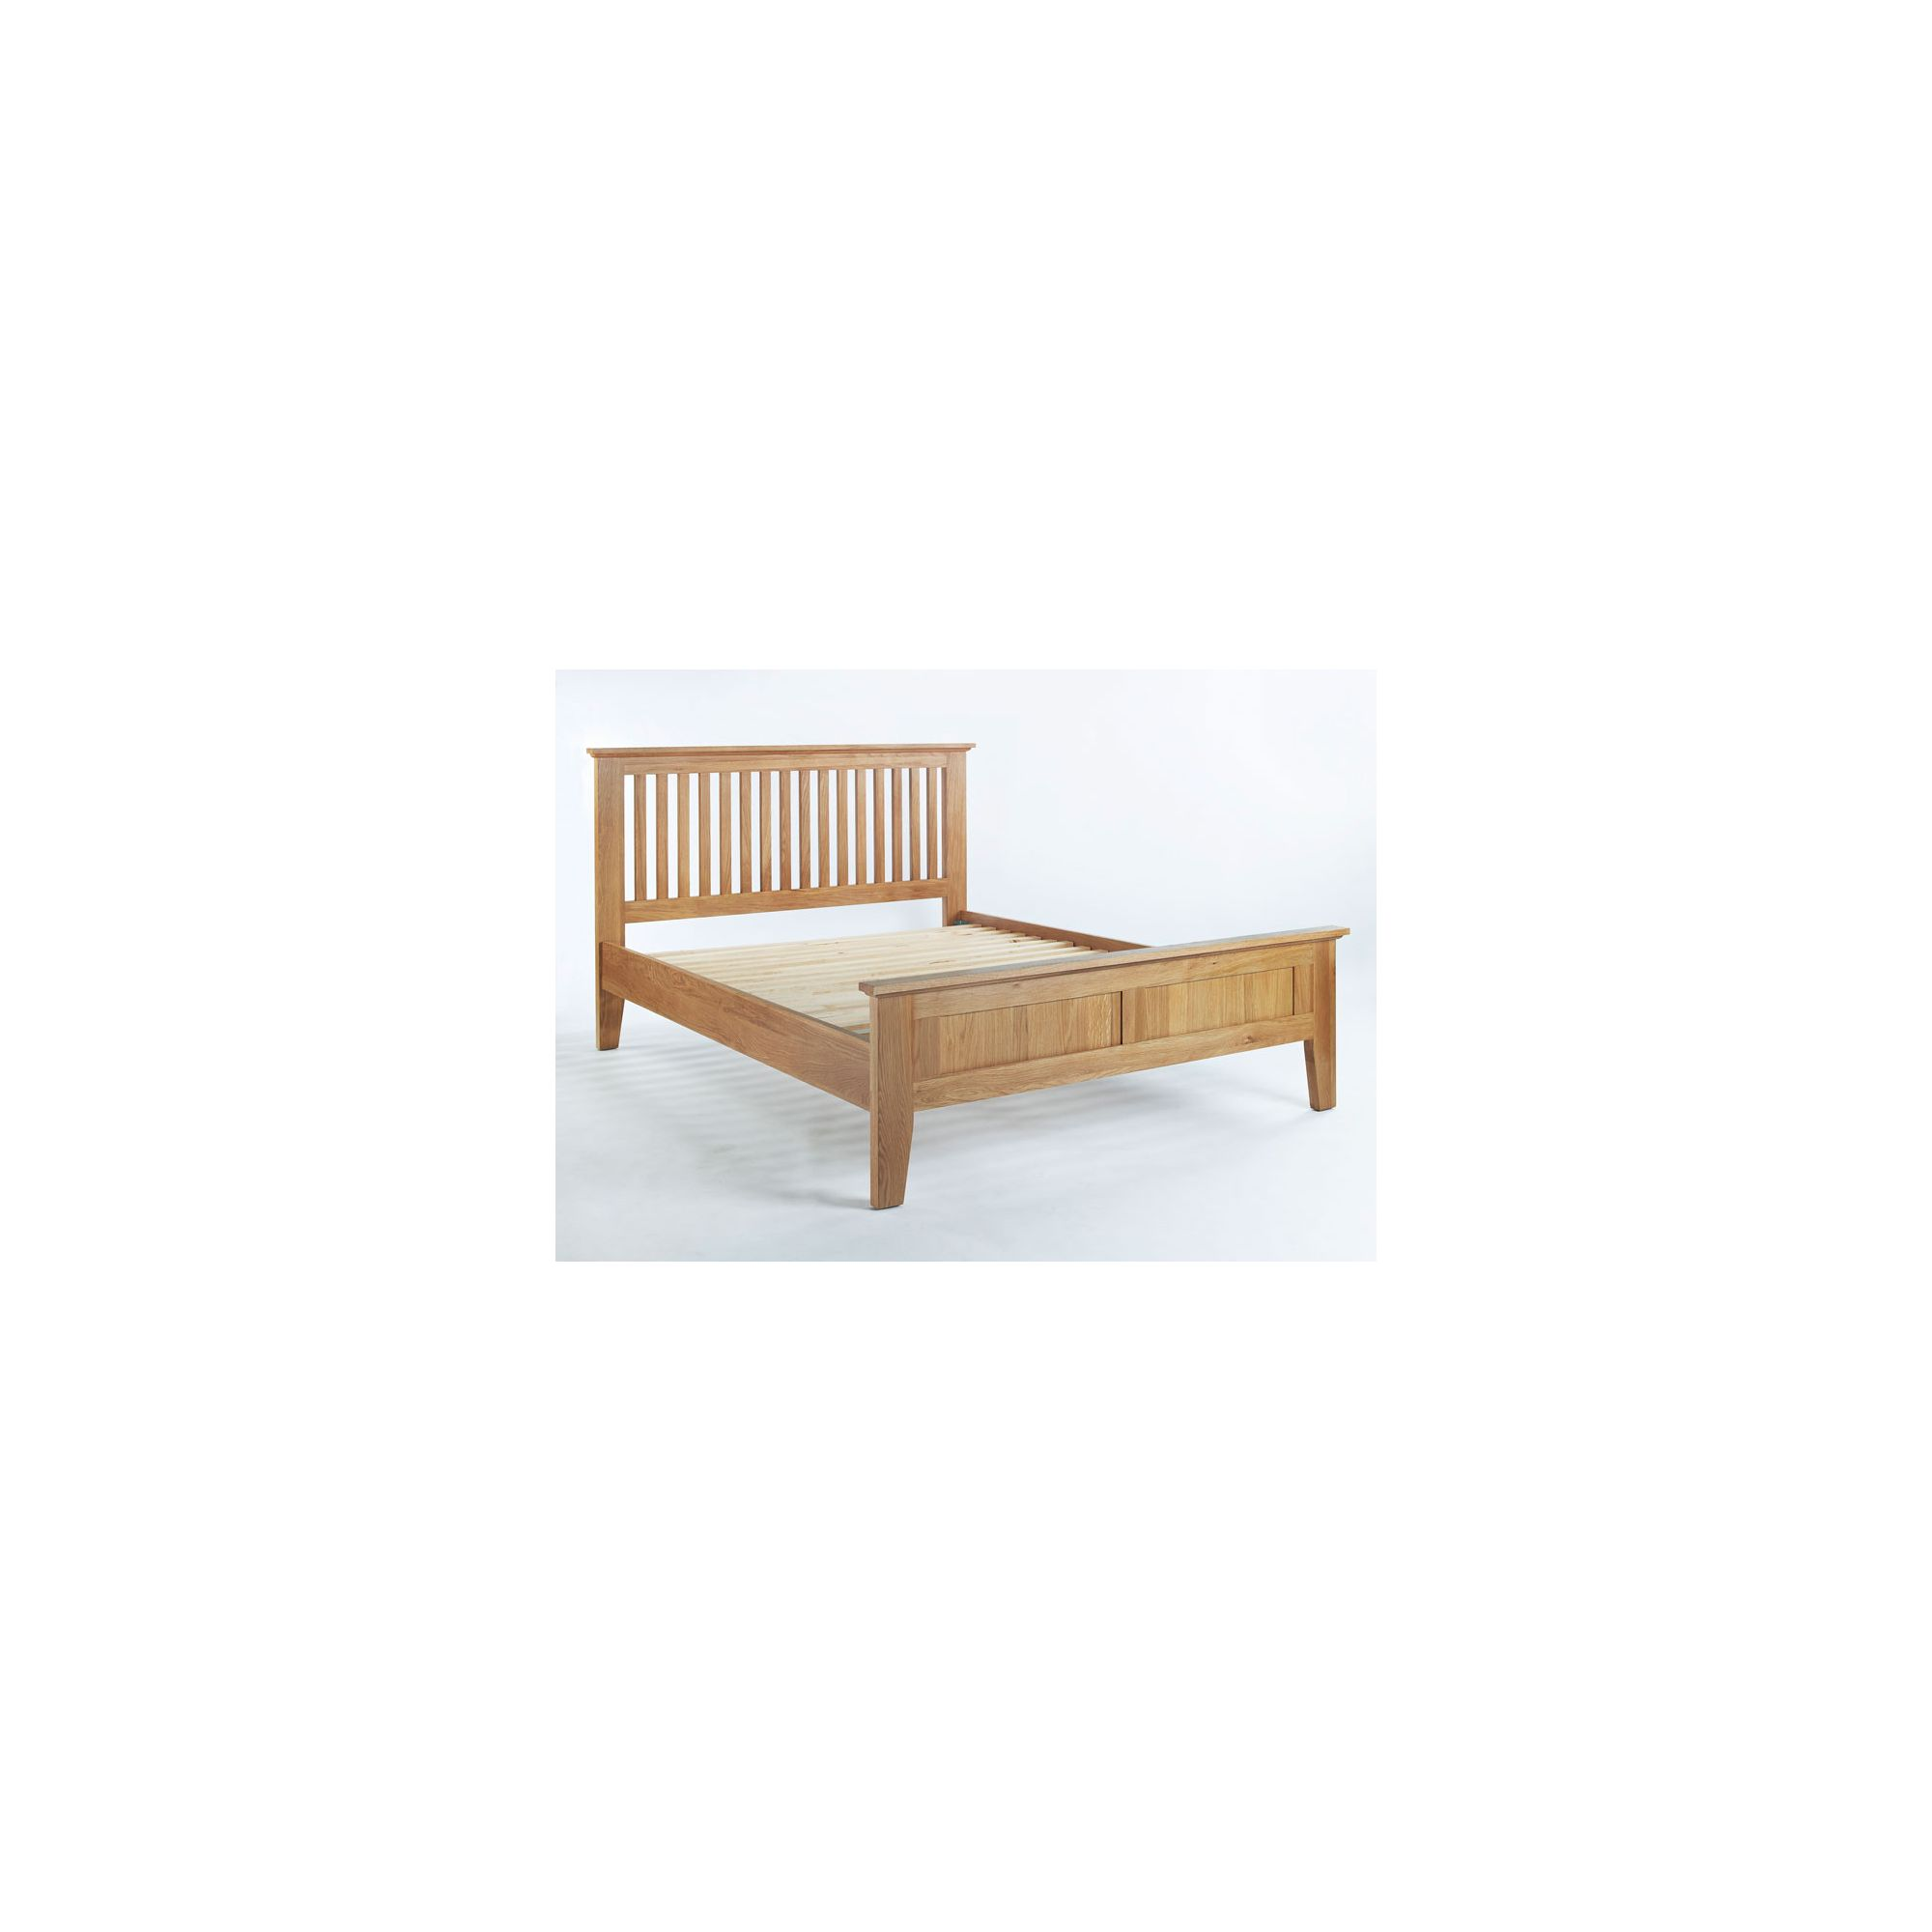 Ametis Sherwood Oak Bed Frame - King at Tesco Direct